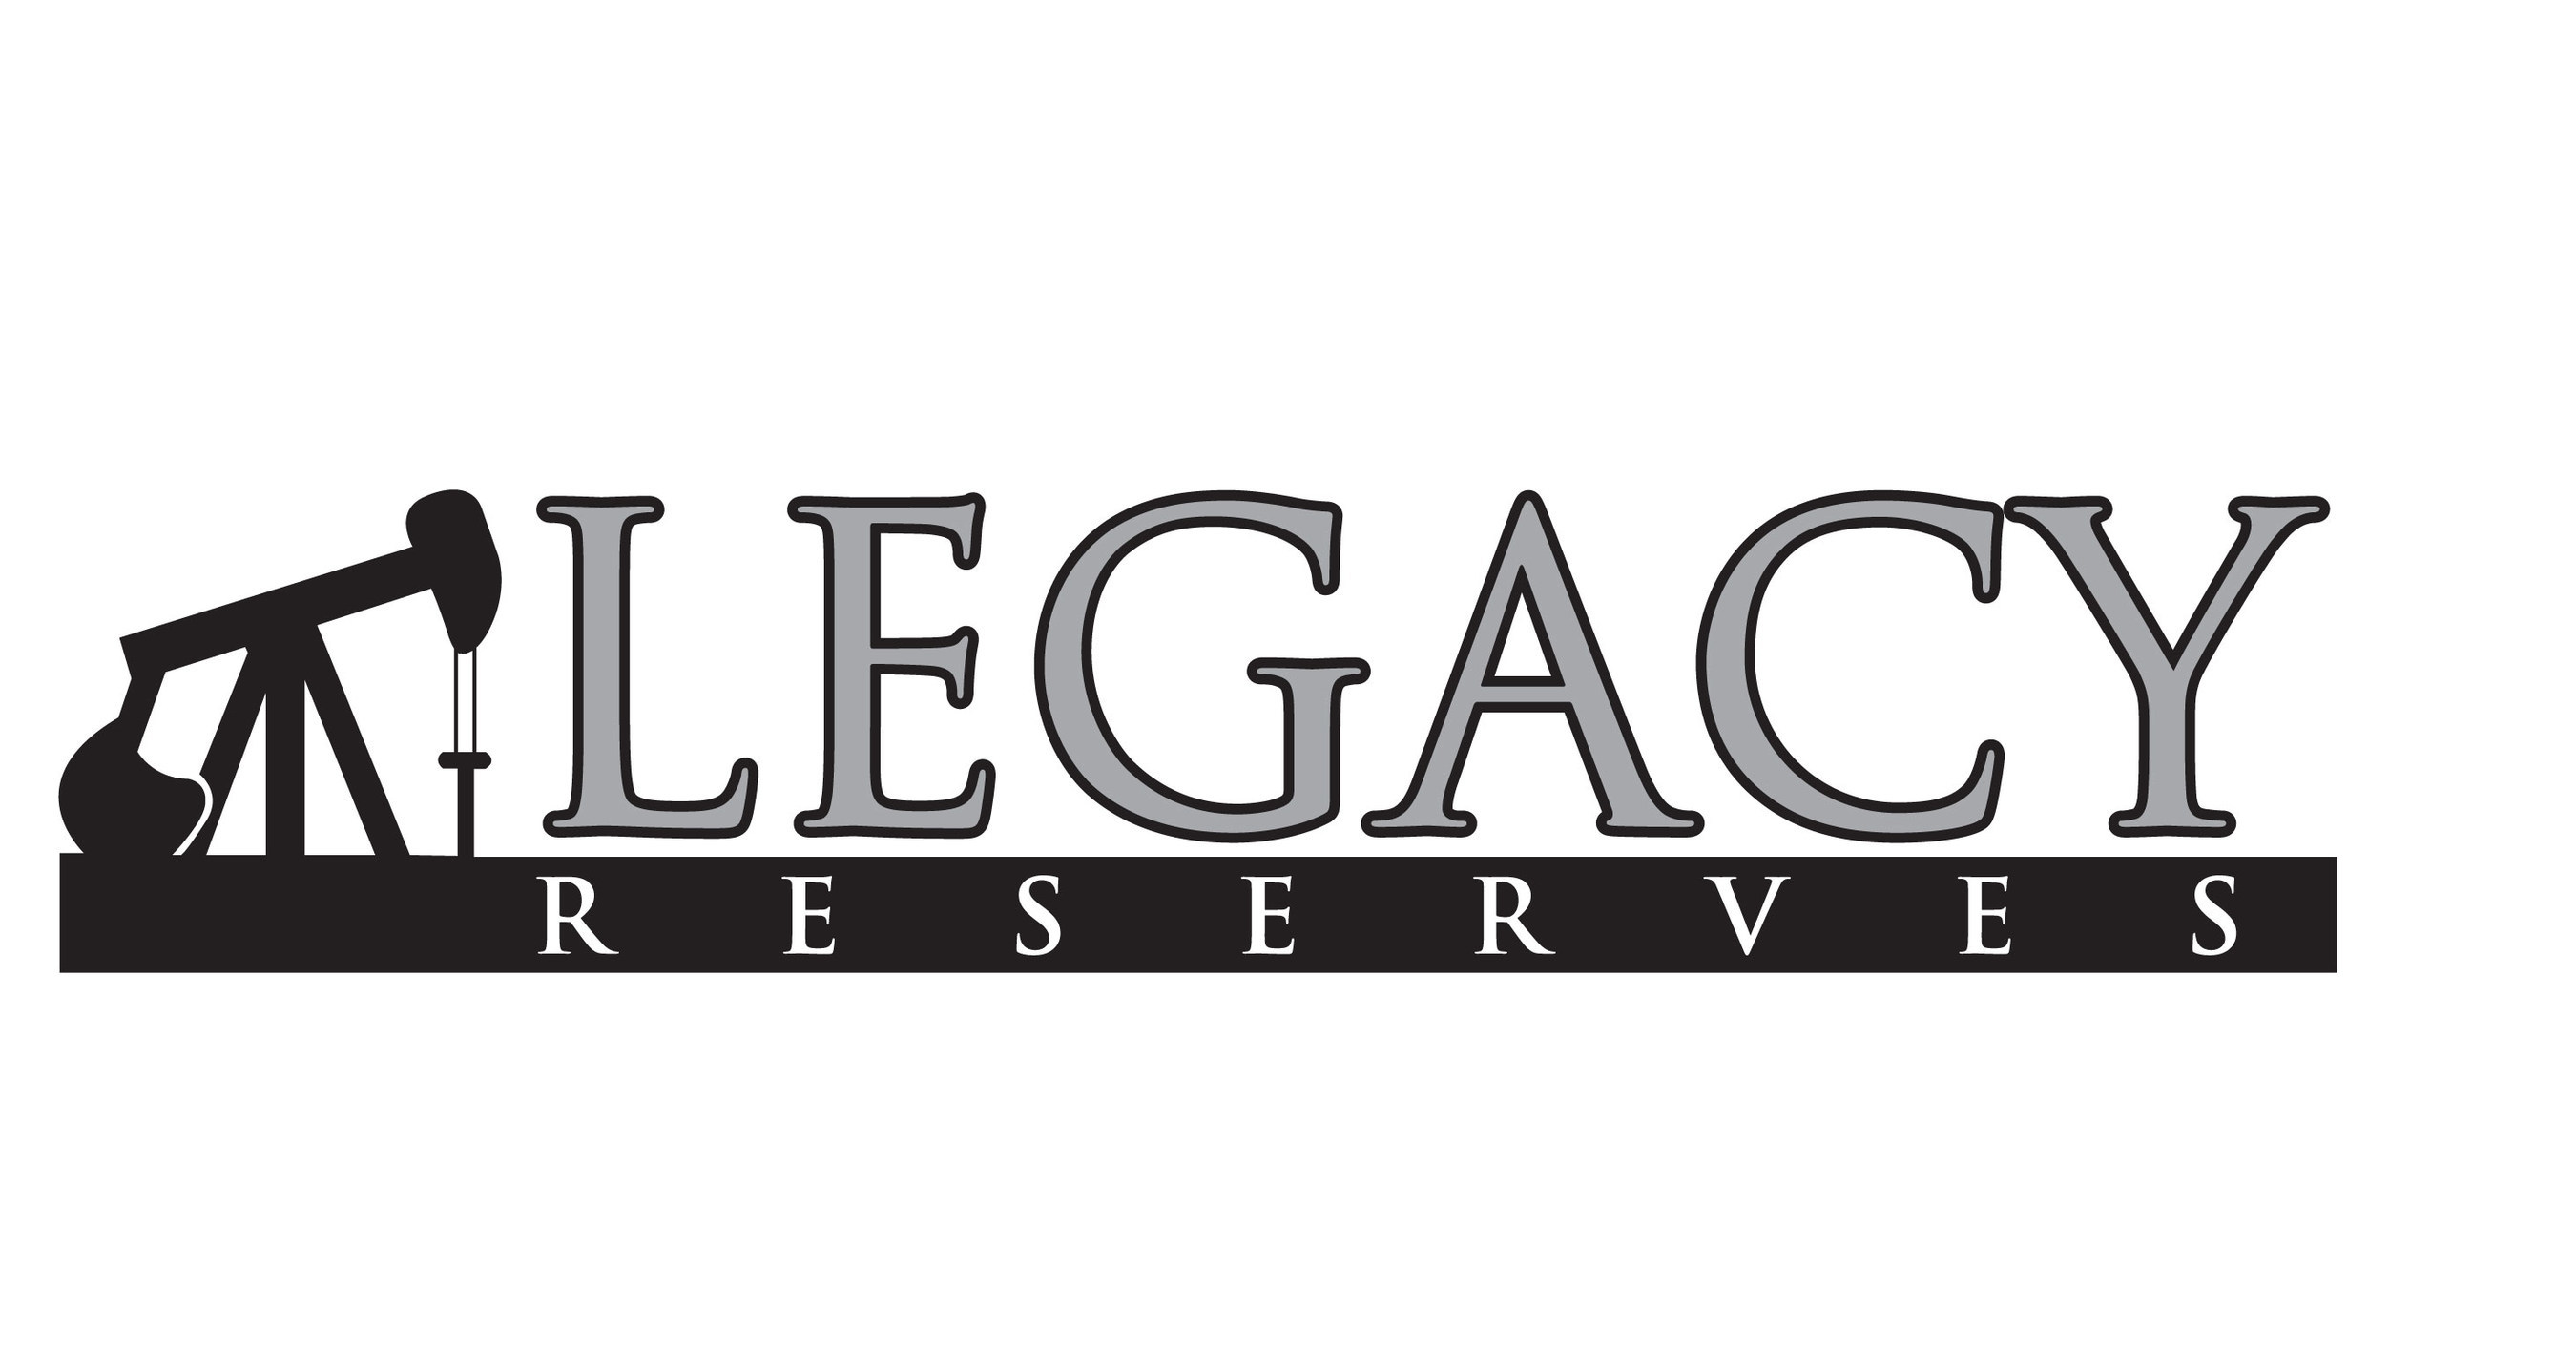 Legacy Reserves Inc  Files For Chapter 11 Protection To Facilitate